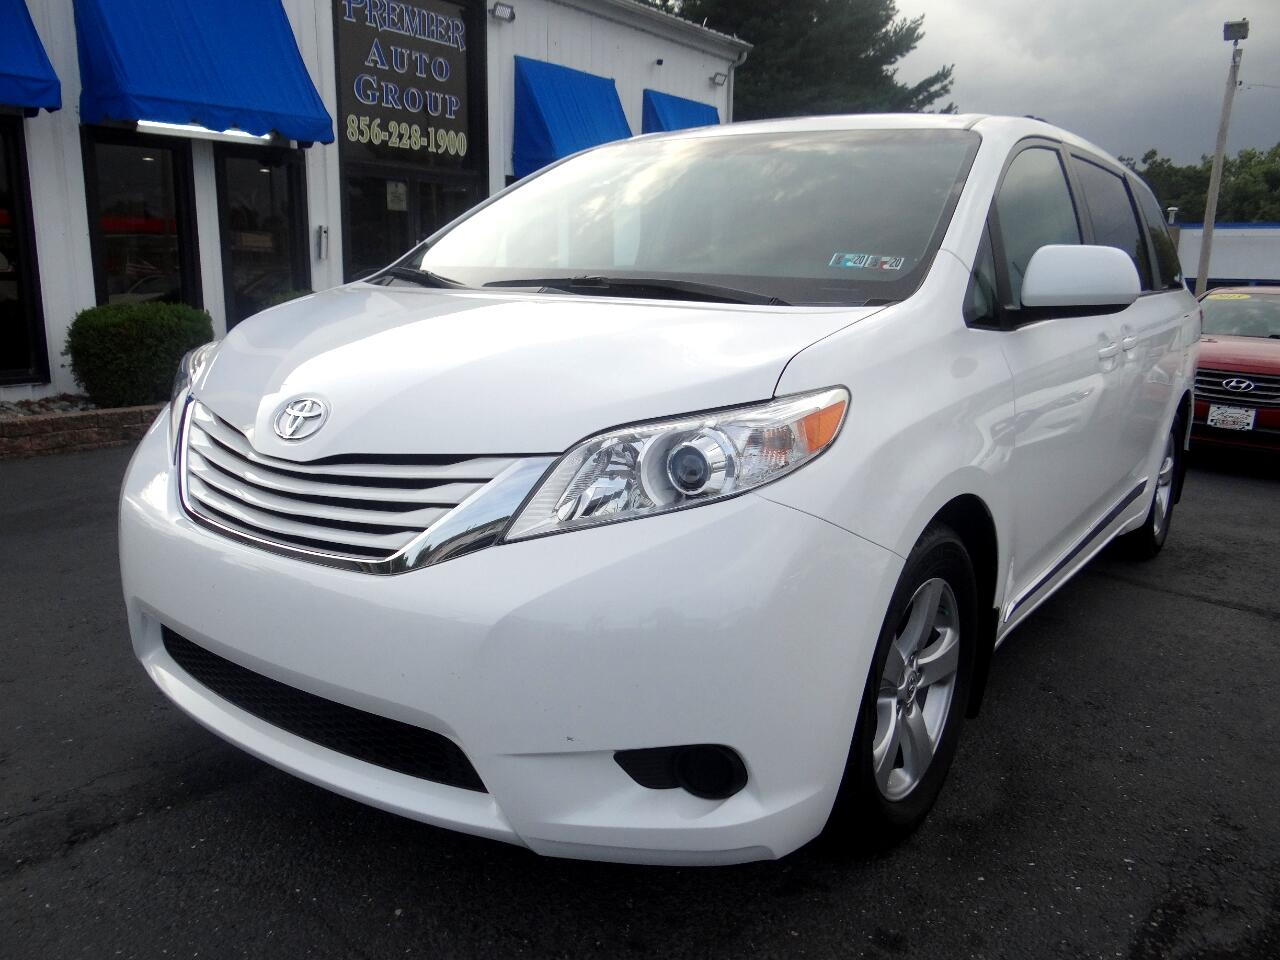 Toyota Sienna 5dr 8-Pass Van LE FWD (Natl) 2016